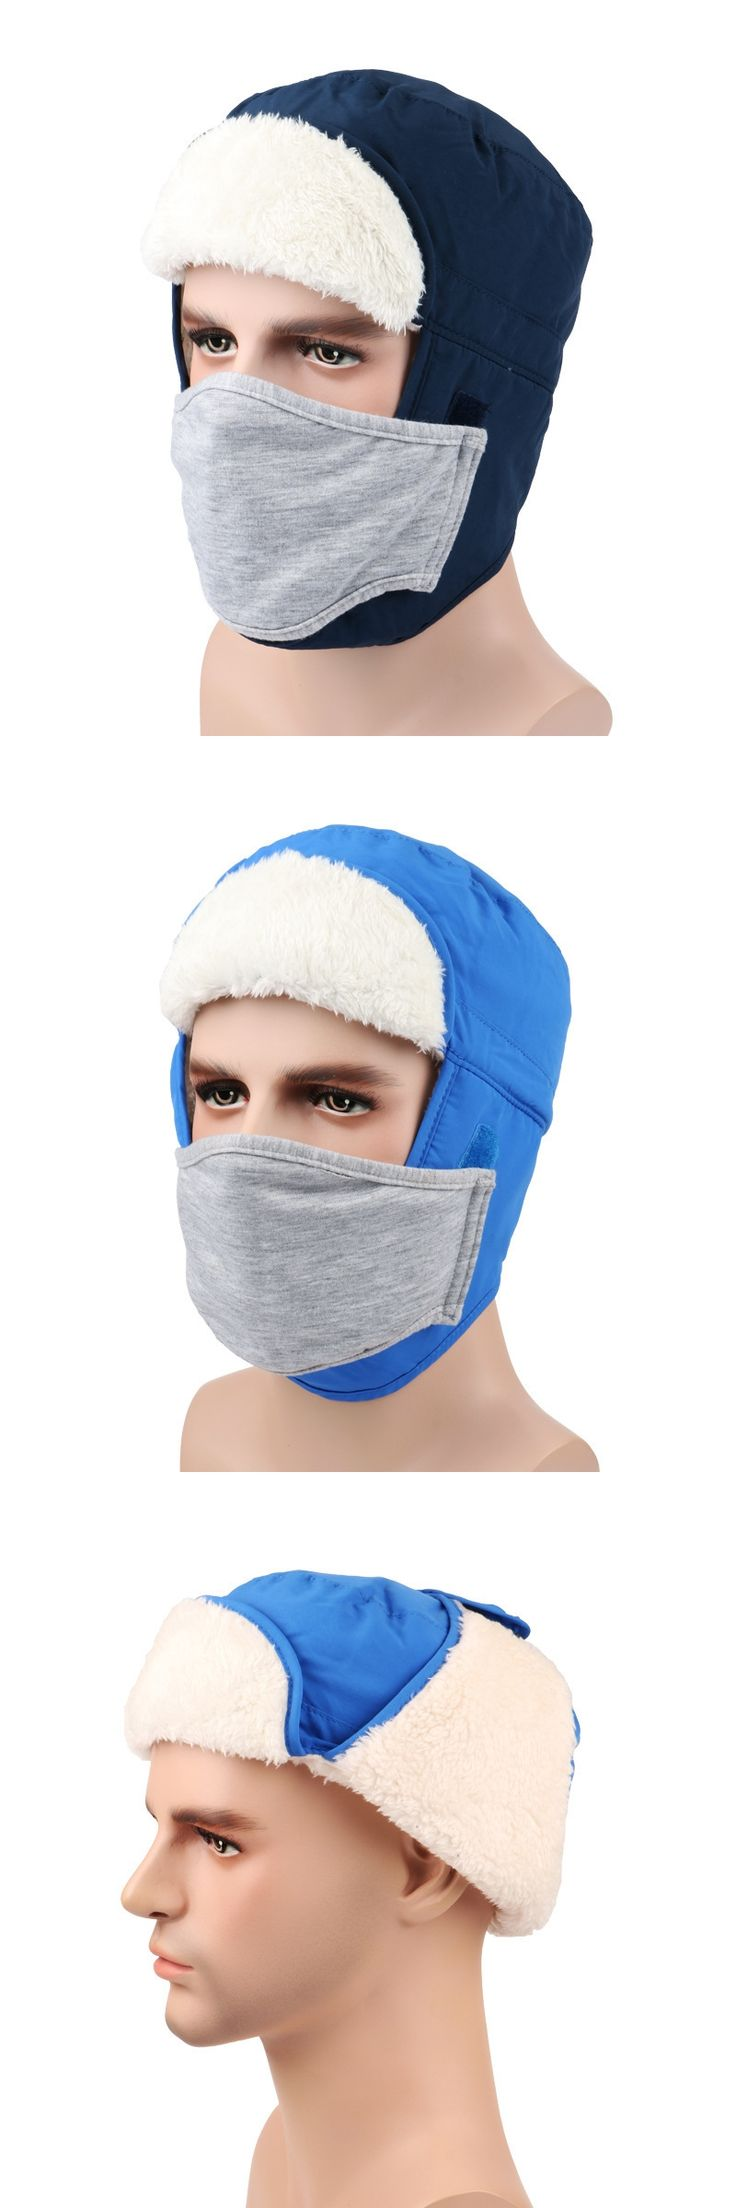 2017 Thickened New Practical Winter Cap Outdoor Face Mask Warm Hat Russian Sport Ski Hats for women balaclava caps christmas